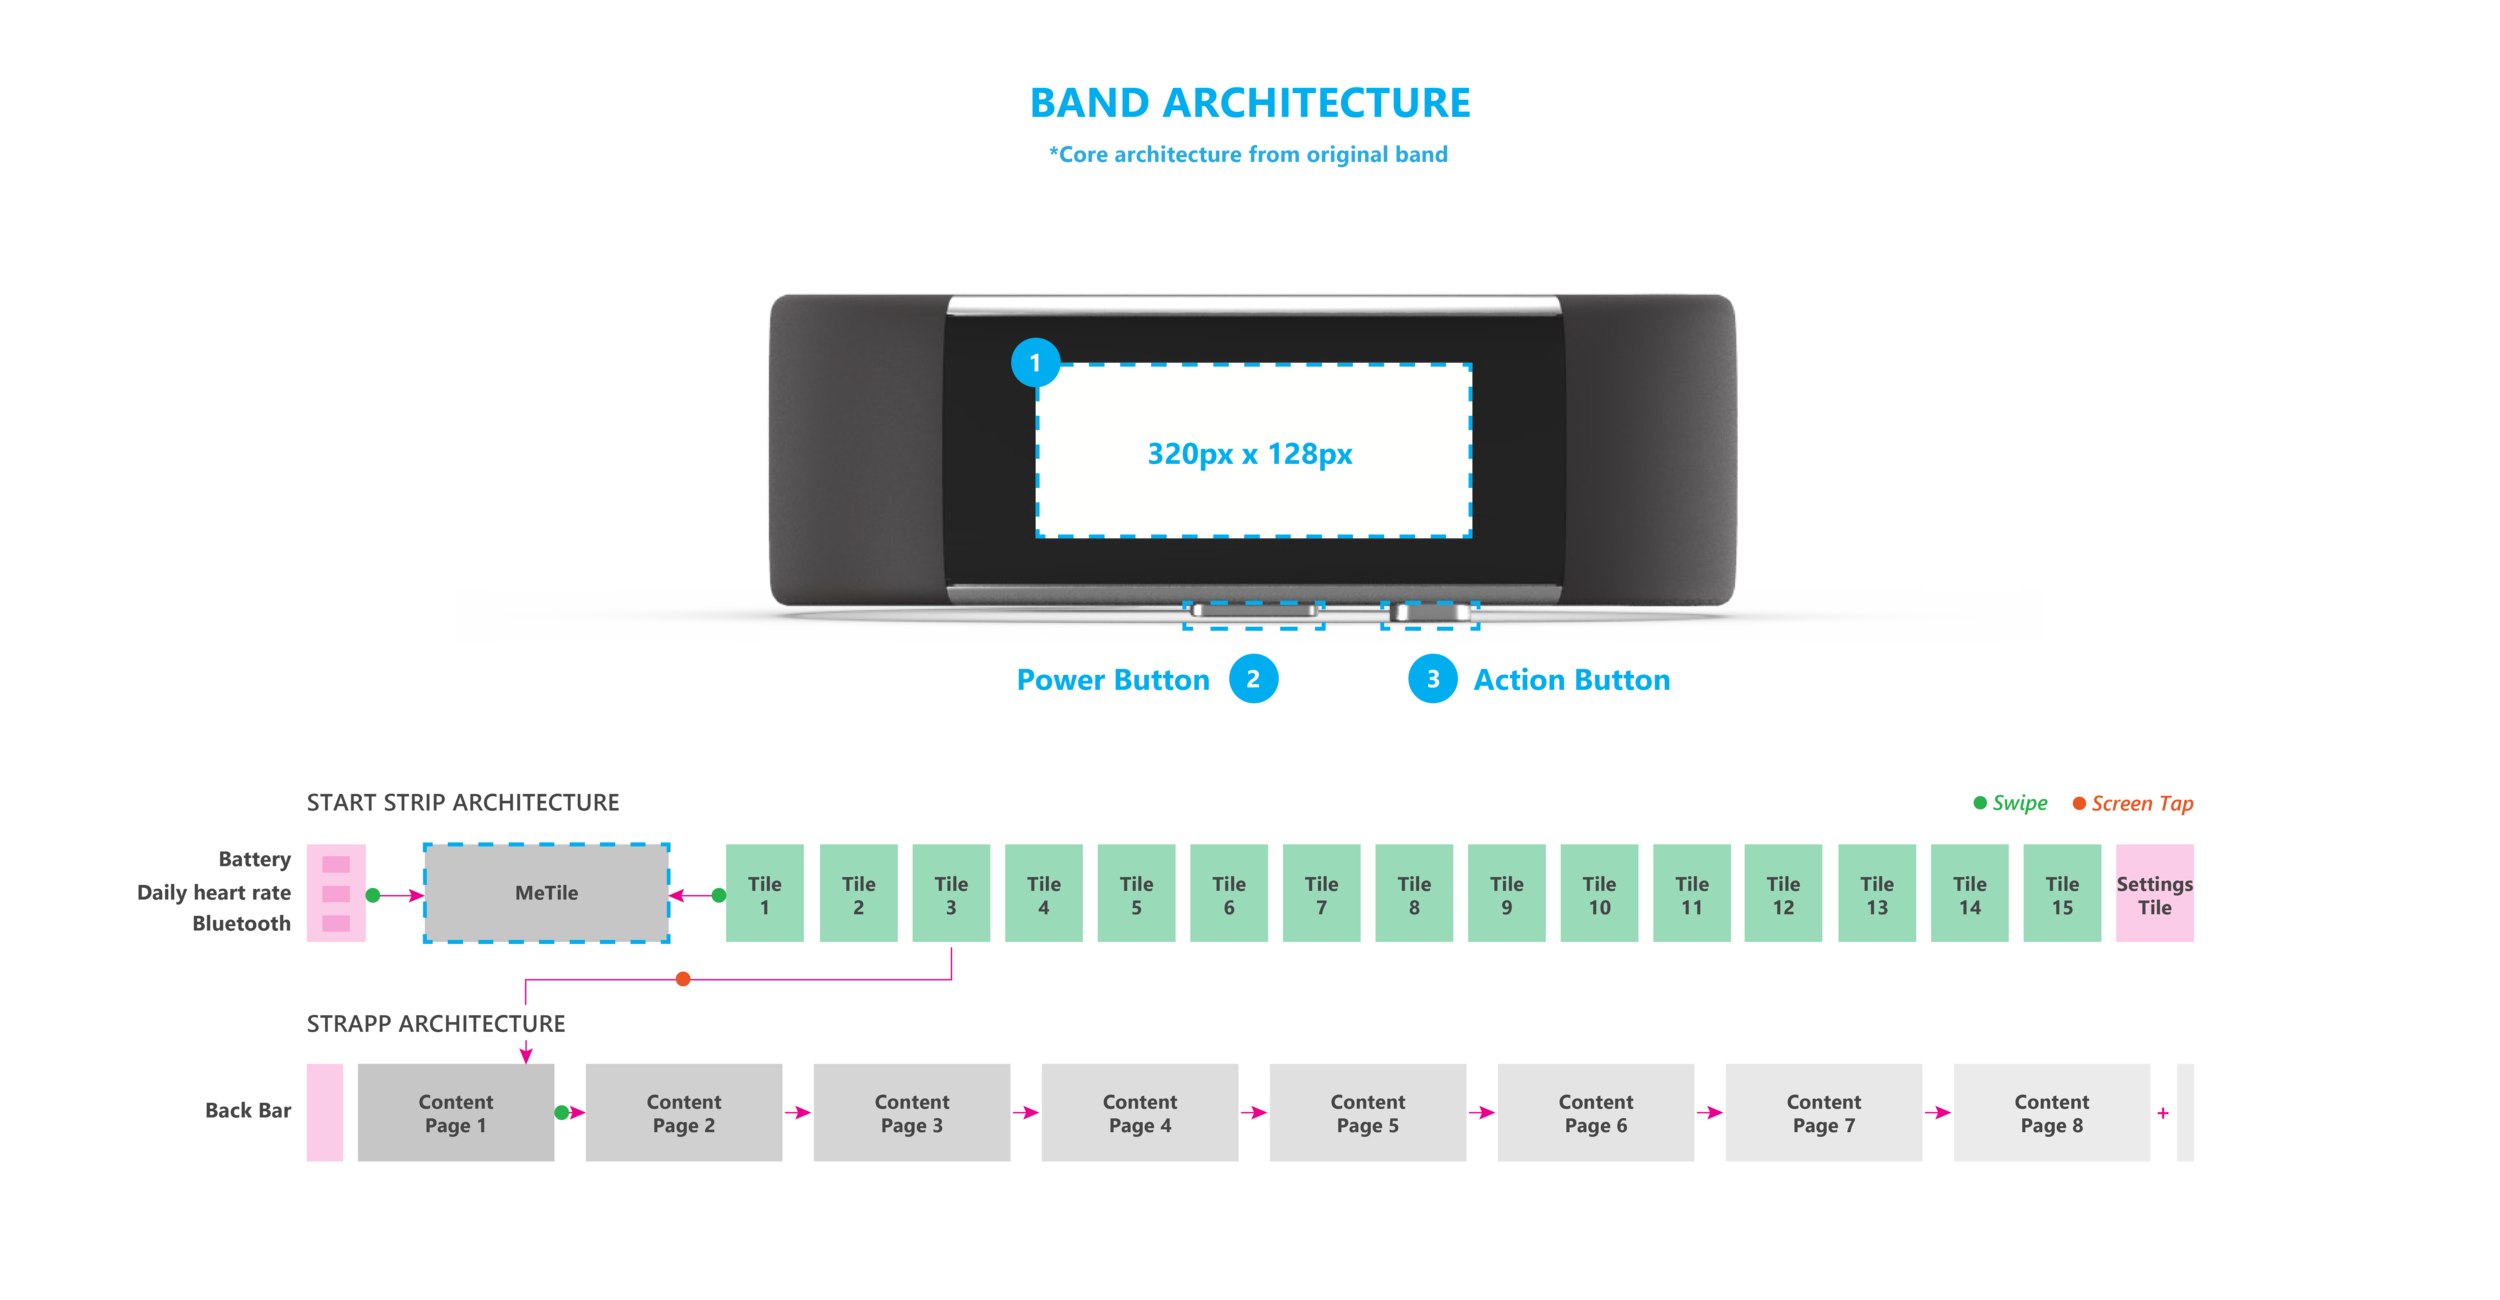 Band_Screen_Architecture_and_Dimensions.png